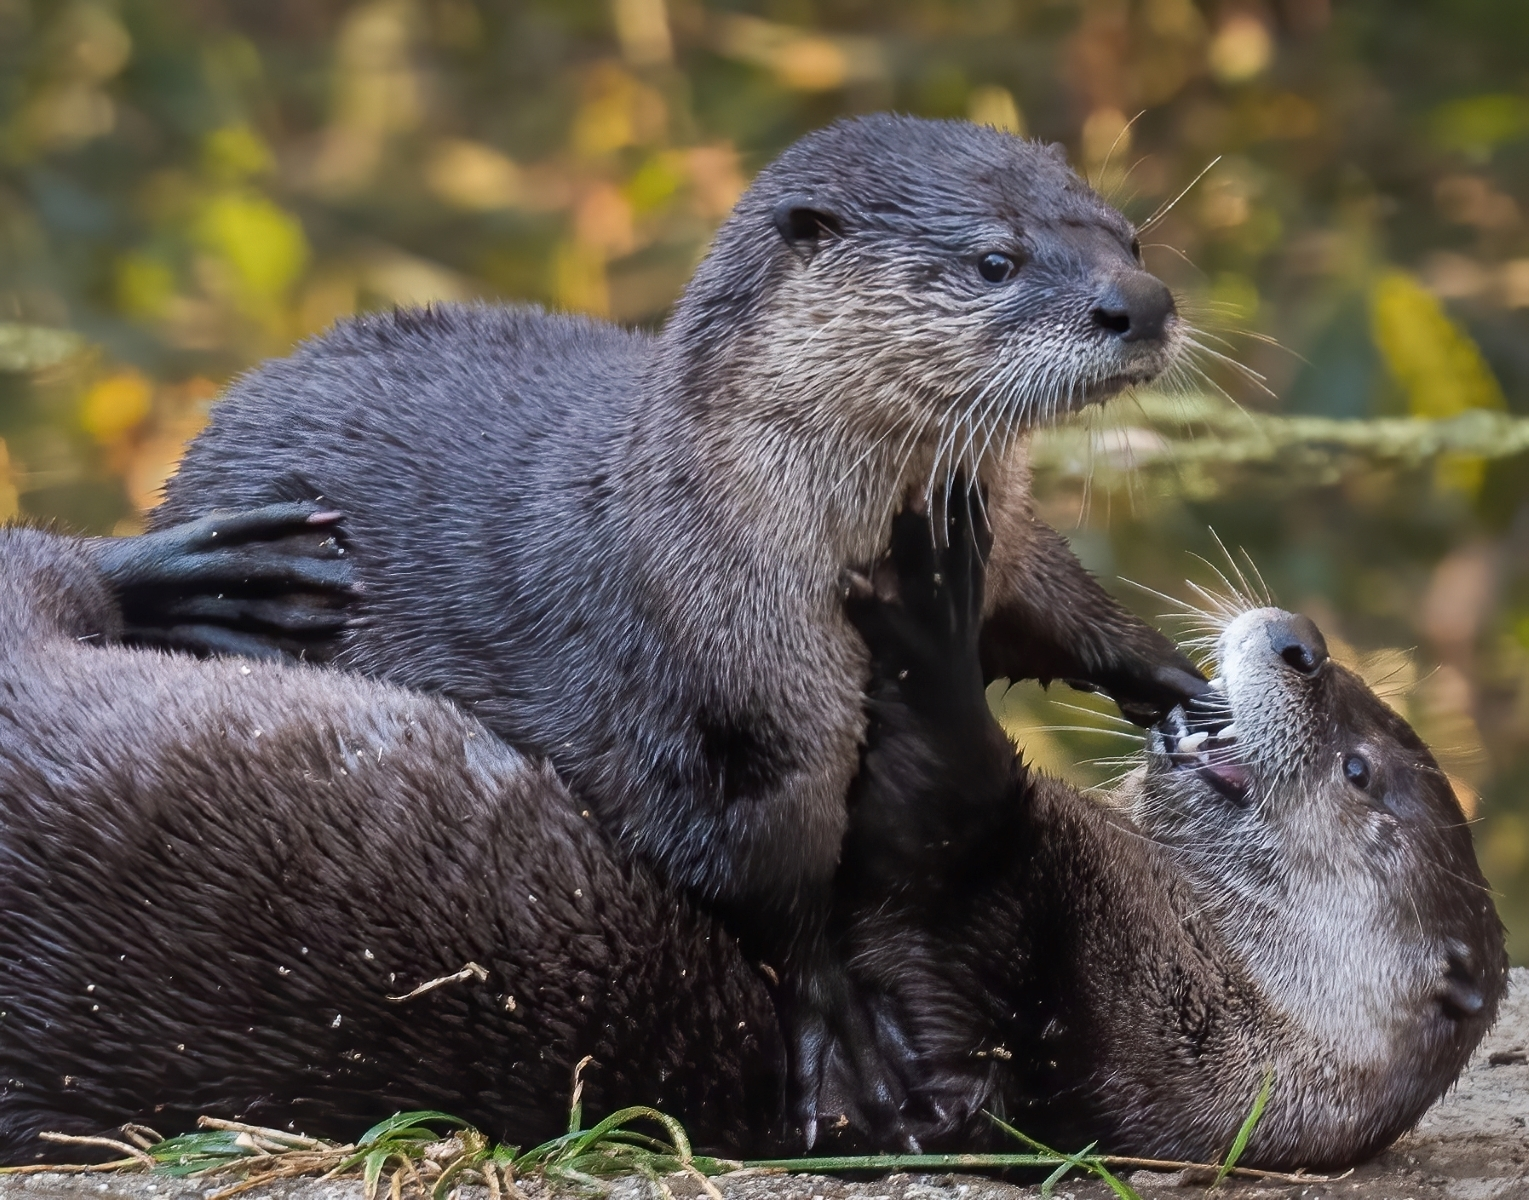 Mother-and-pup-North-American-river-otters-engage-in-play.-Otter-play-helps-build-a-social-bond.-NI-1-Place-by-Sue-Griffin-LV